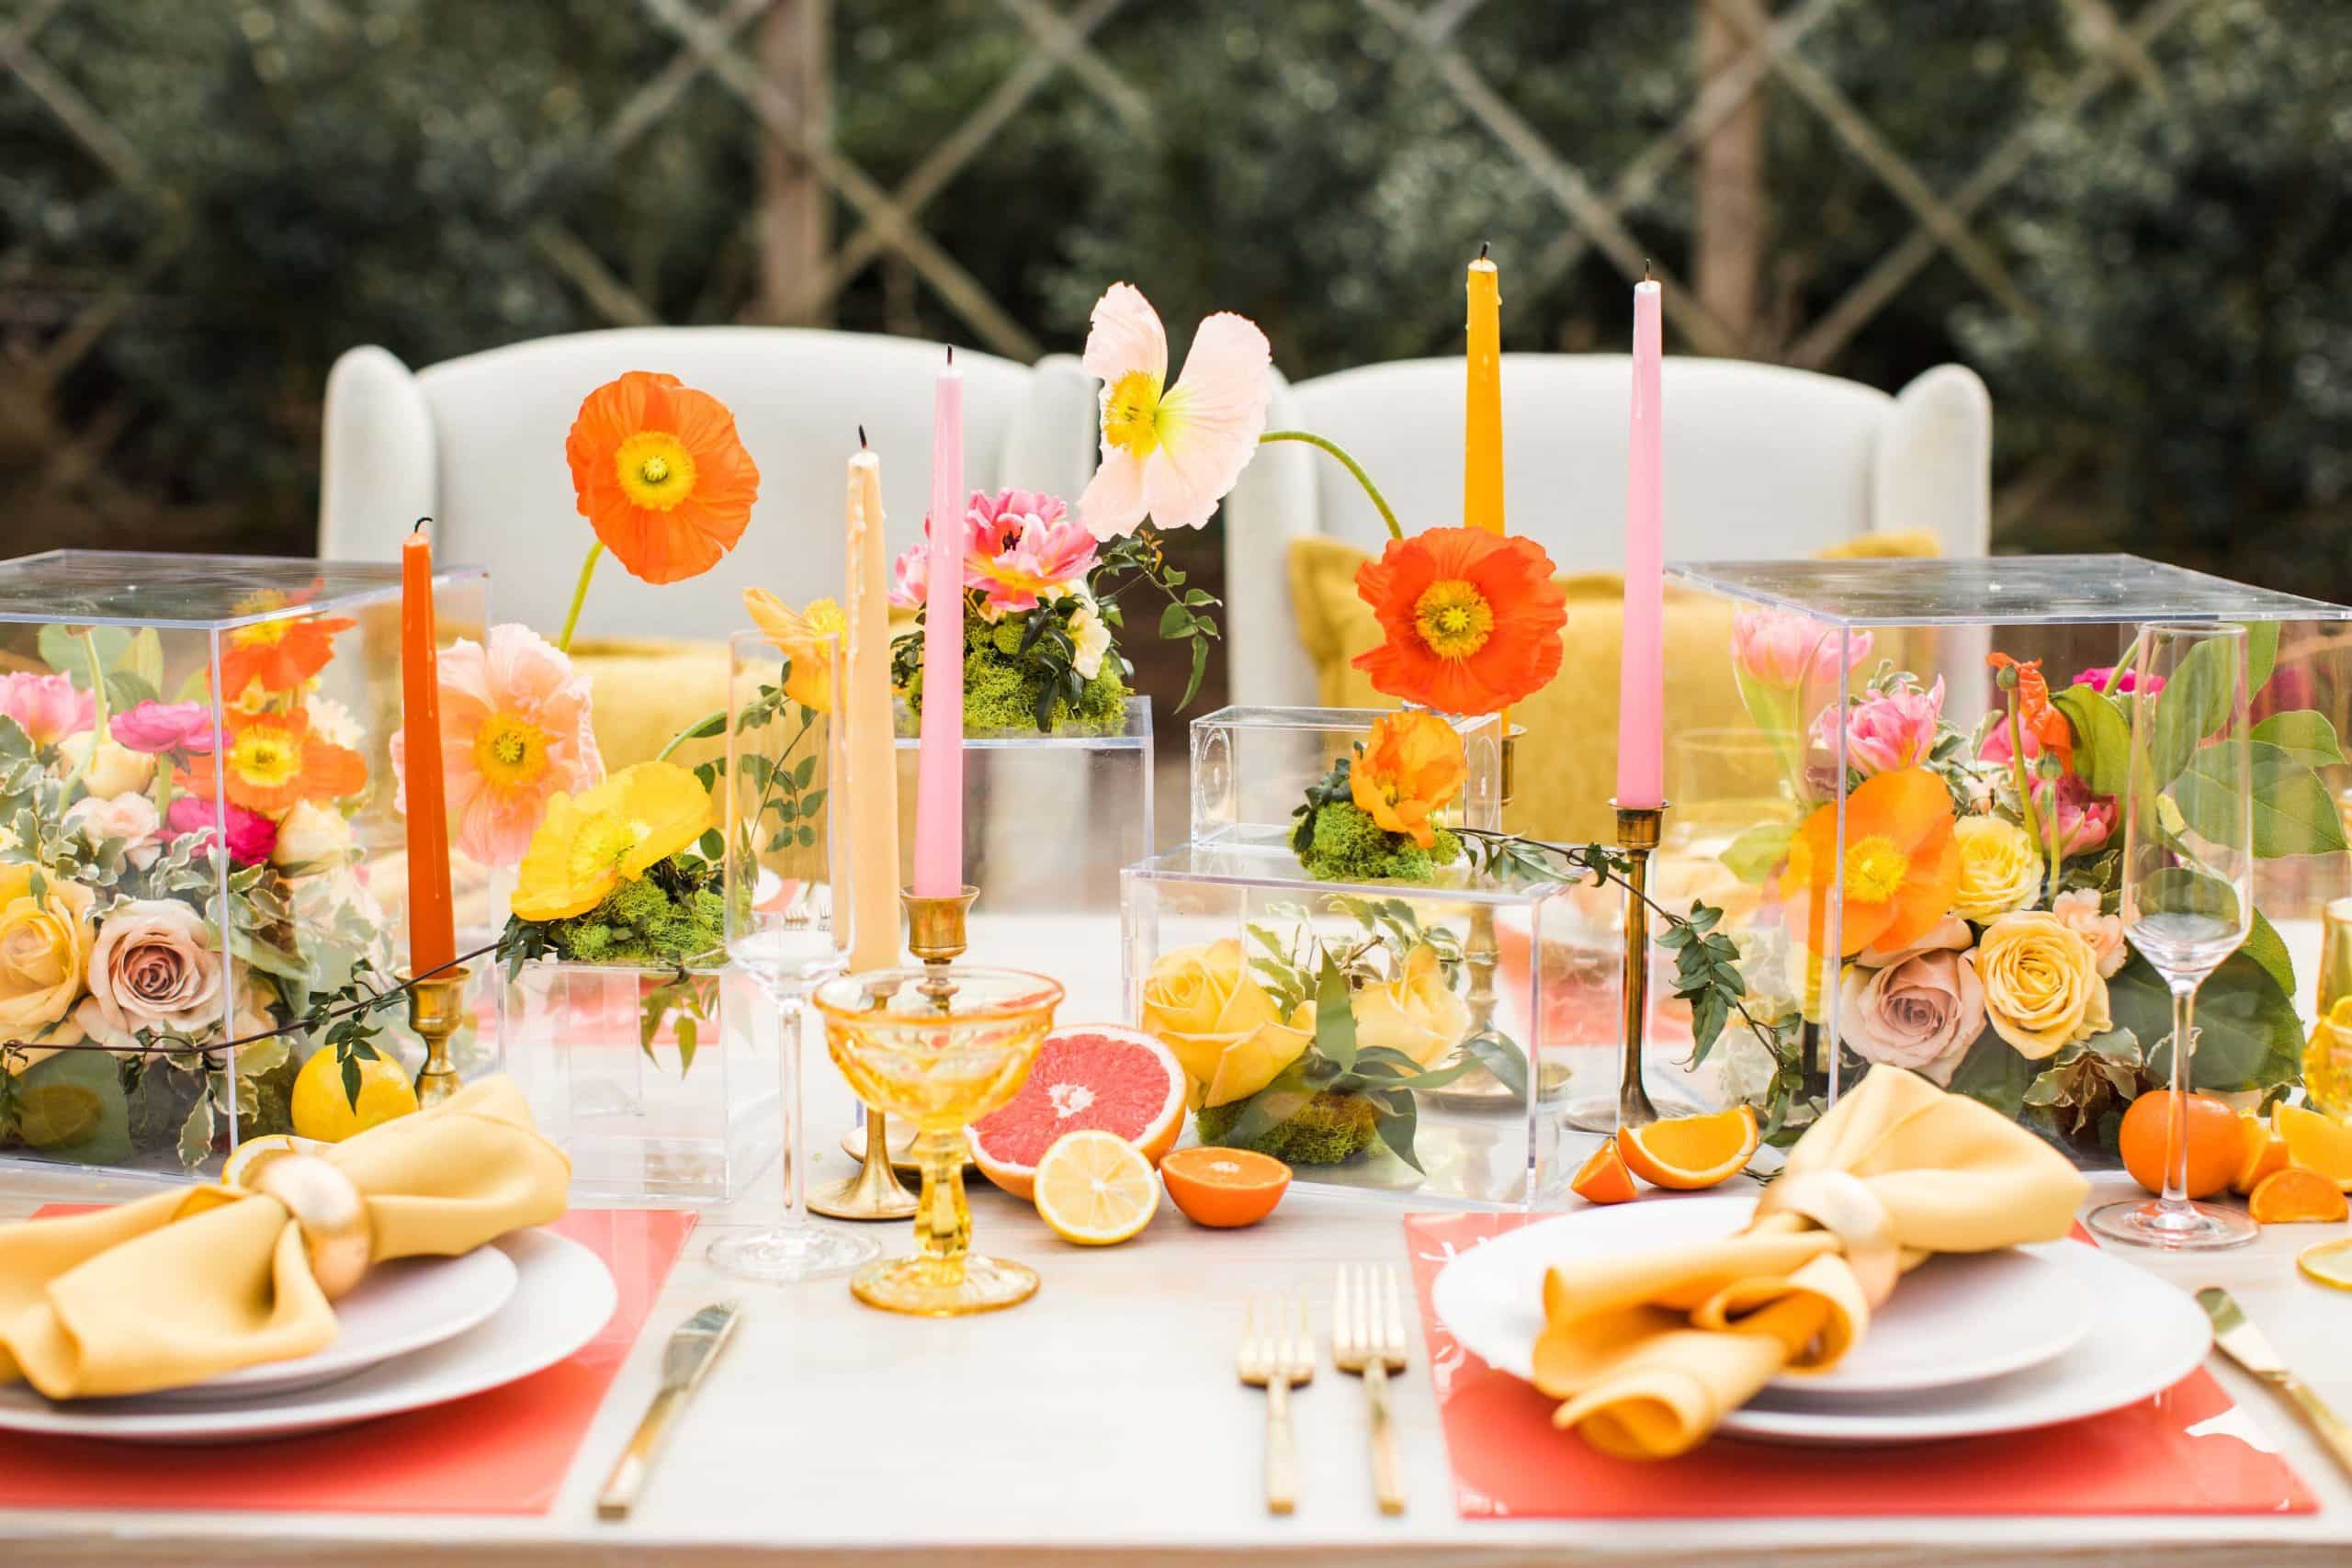 Wedding Theme for Summer Lemon Party Decor Ideas